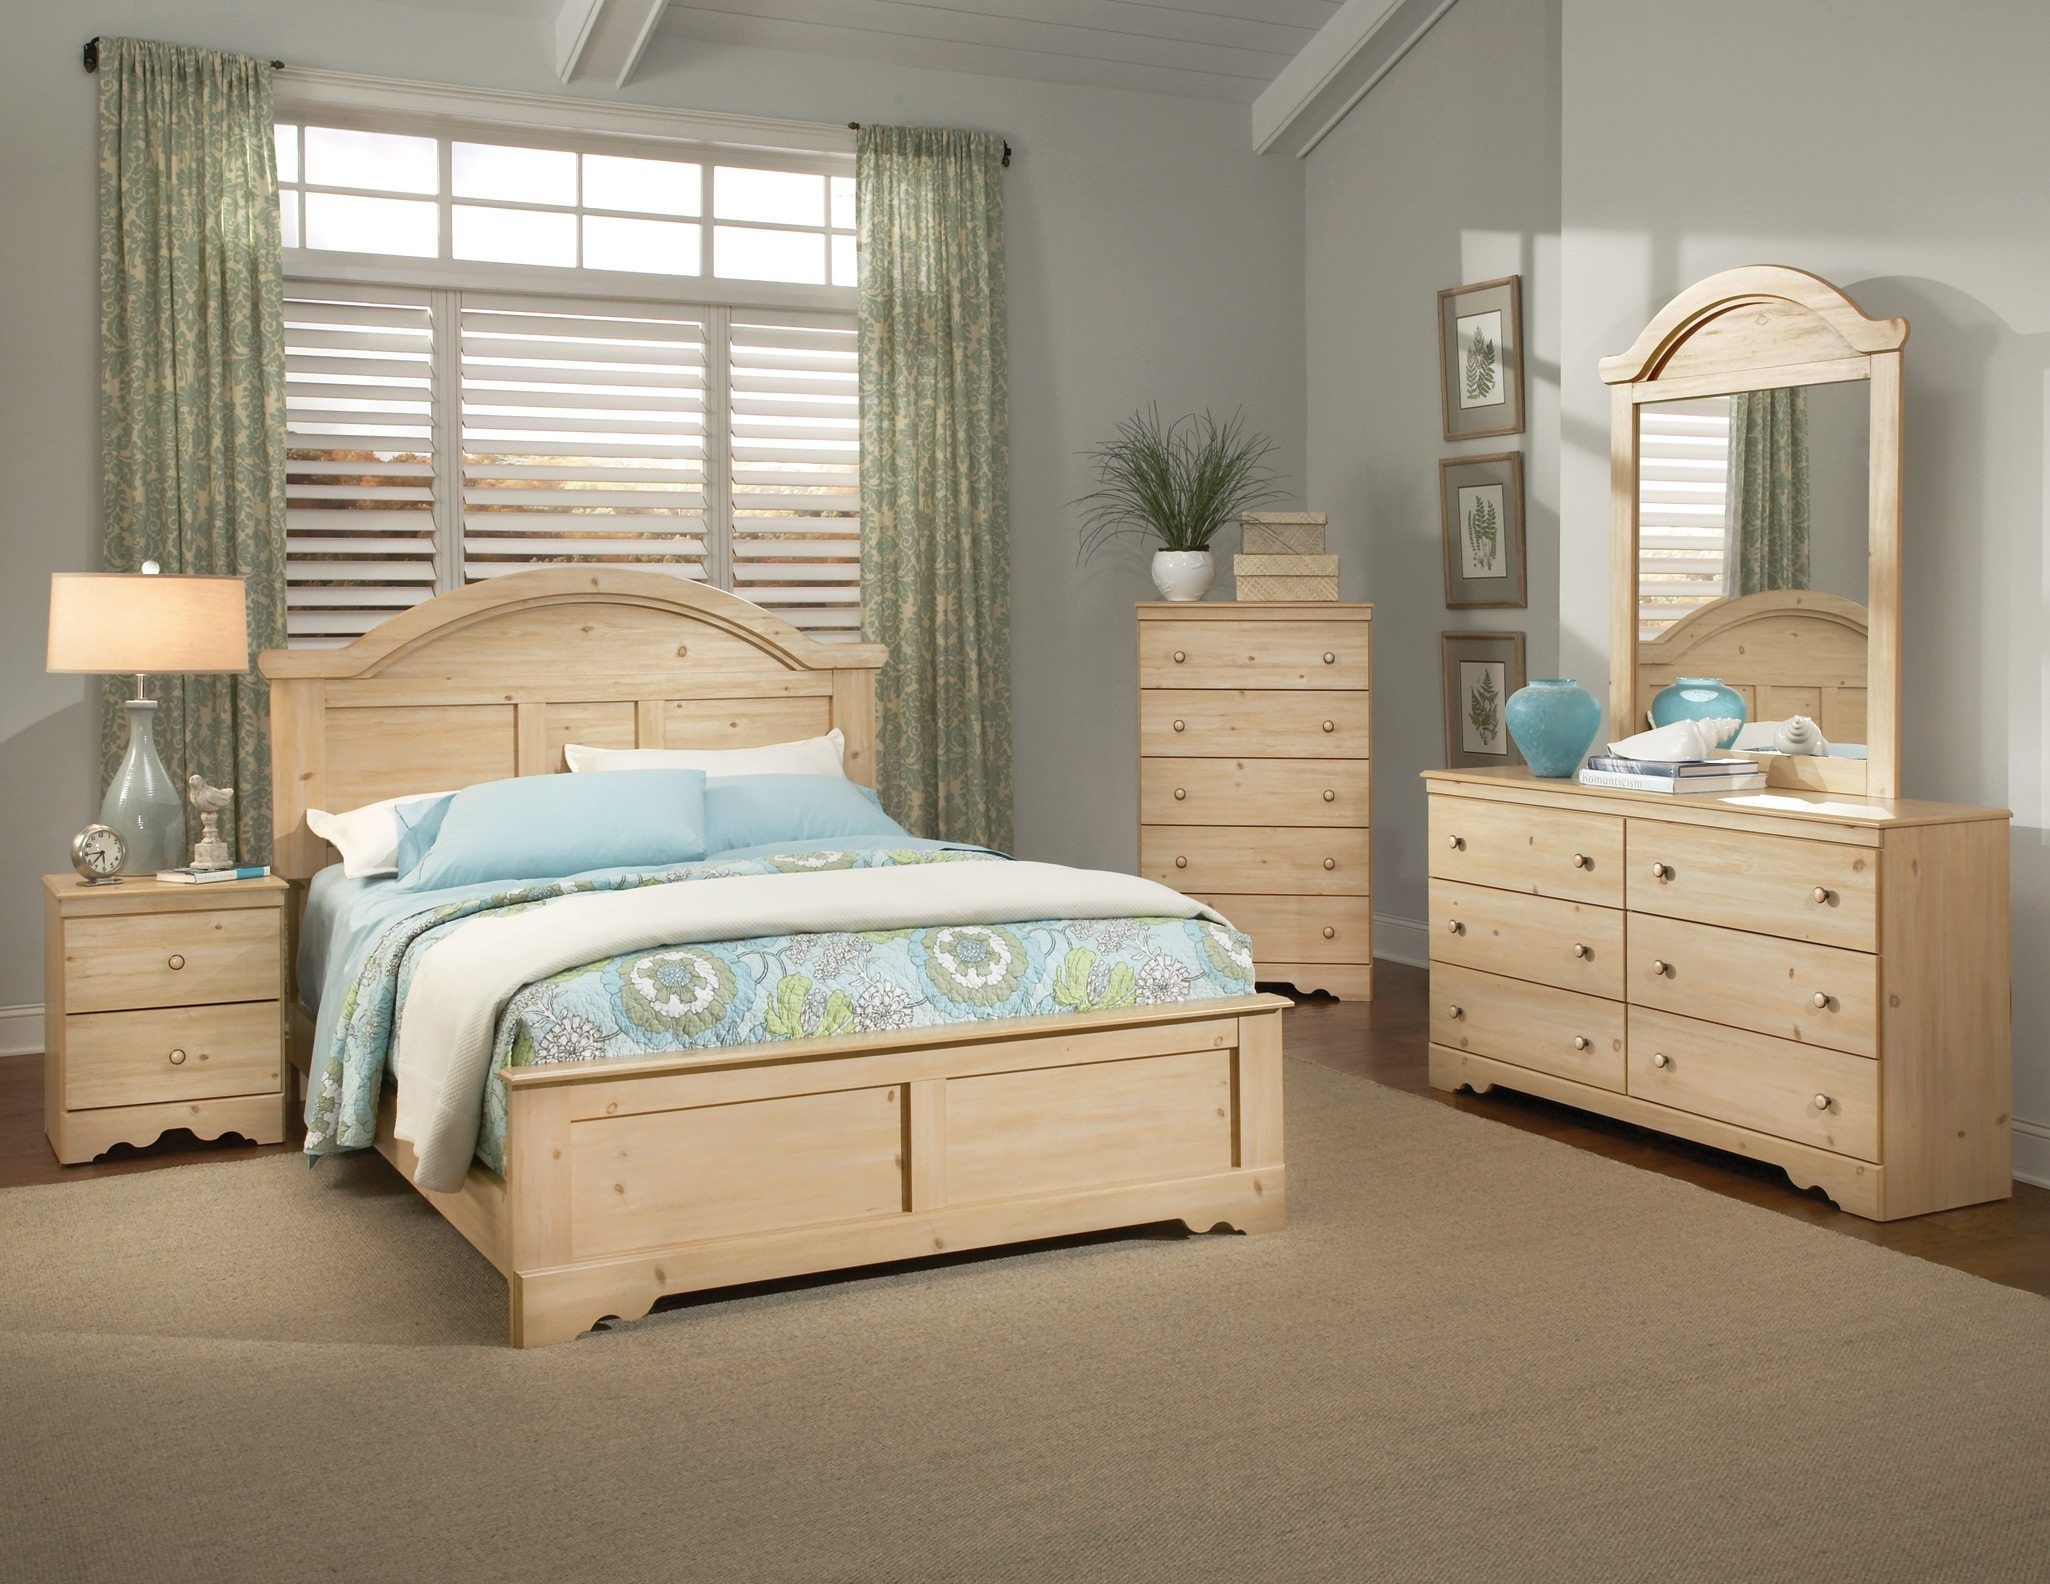 Green Pine Bedroom Furniture